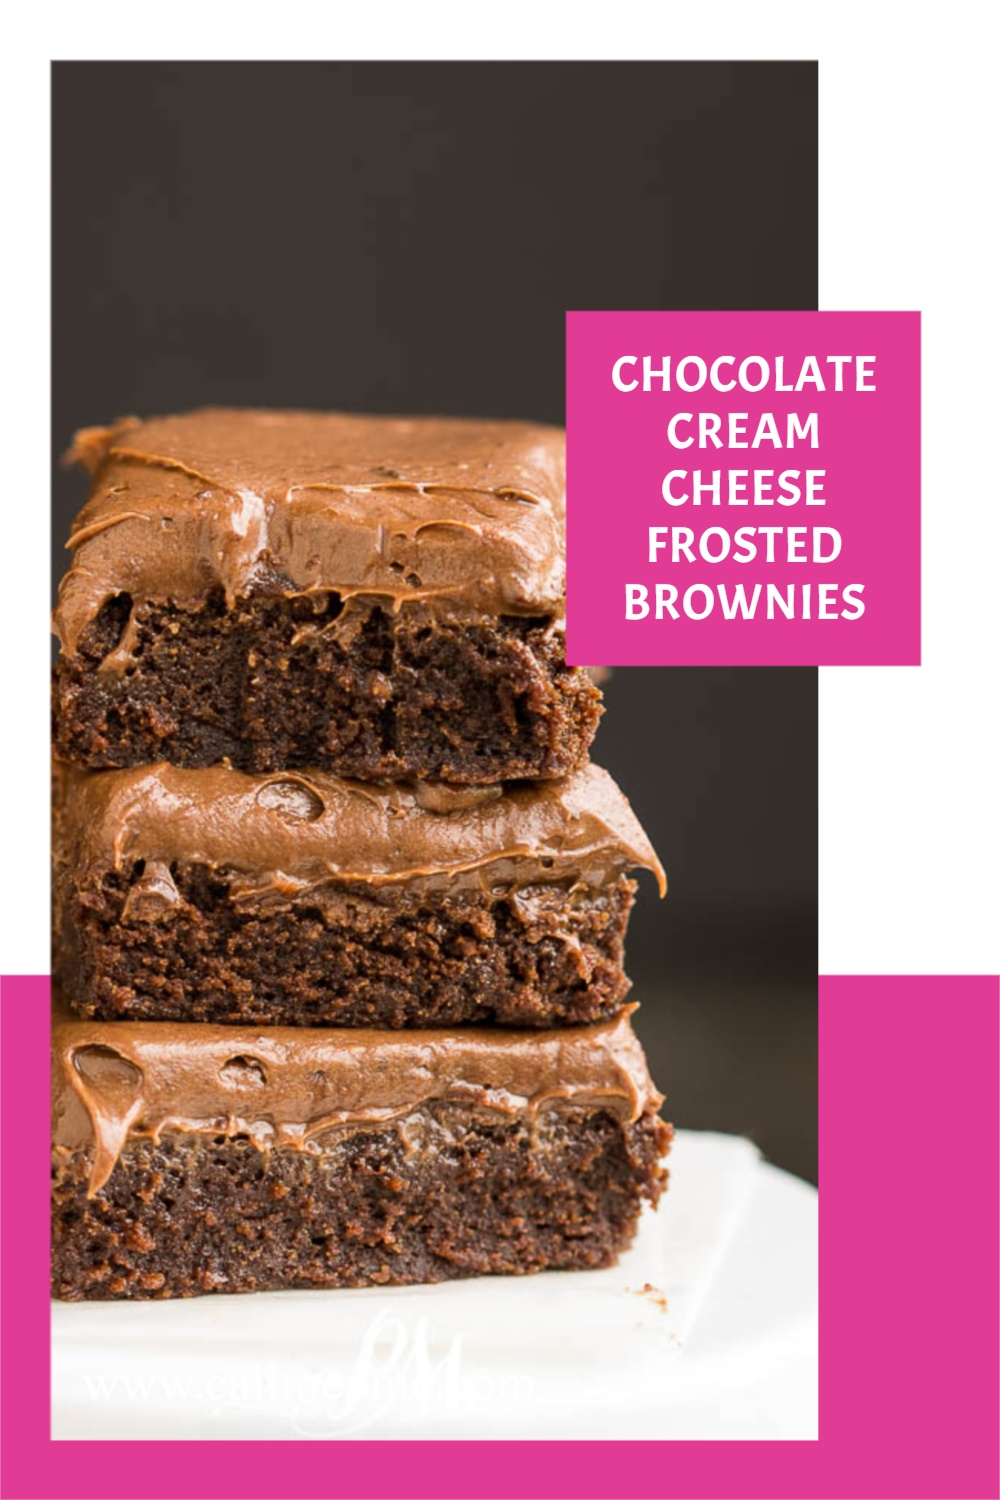 CHOCOLATE-CREAM-CHEESE-FROSTED-BROWNIES